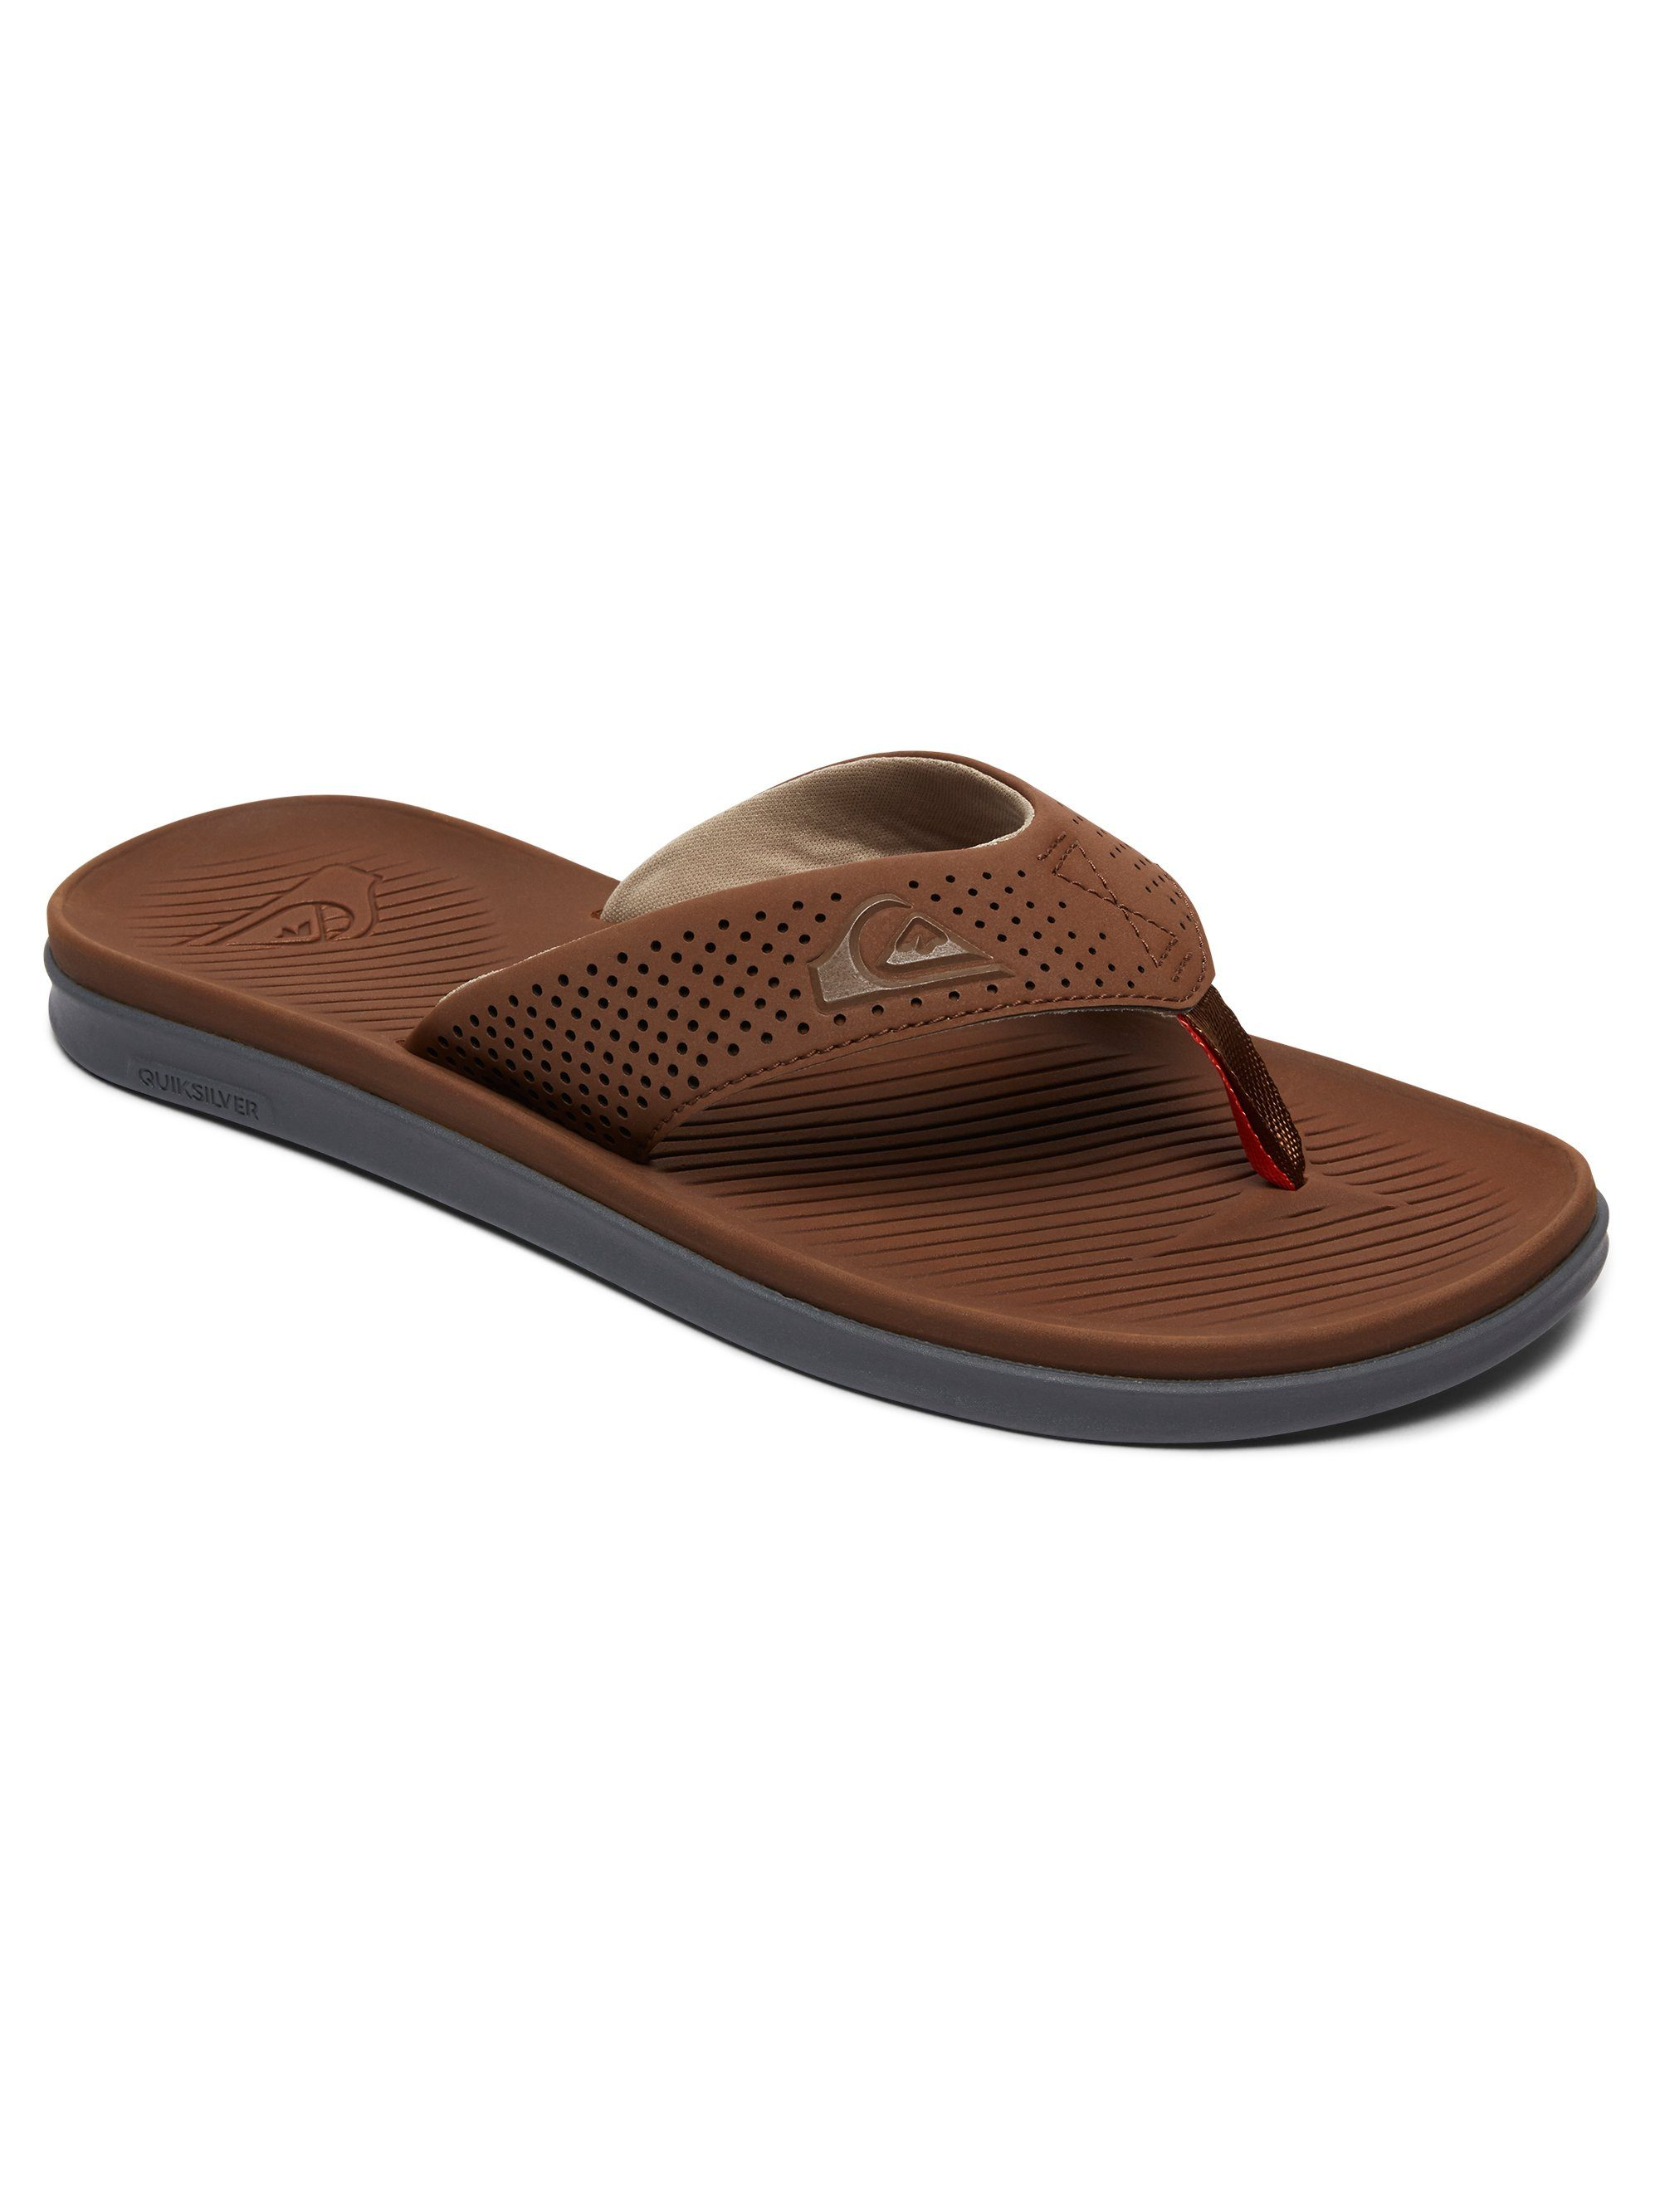 Quiksilver Sandalen Haleiwa Plus online kaufen  Brown#ft5_slash#brown#ft5_slash#orange